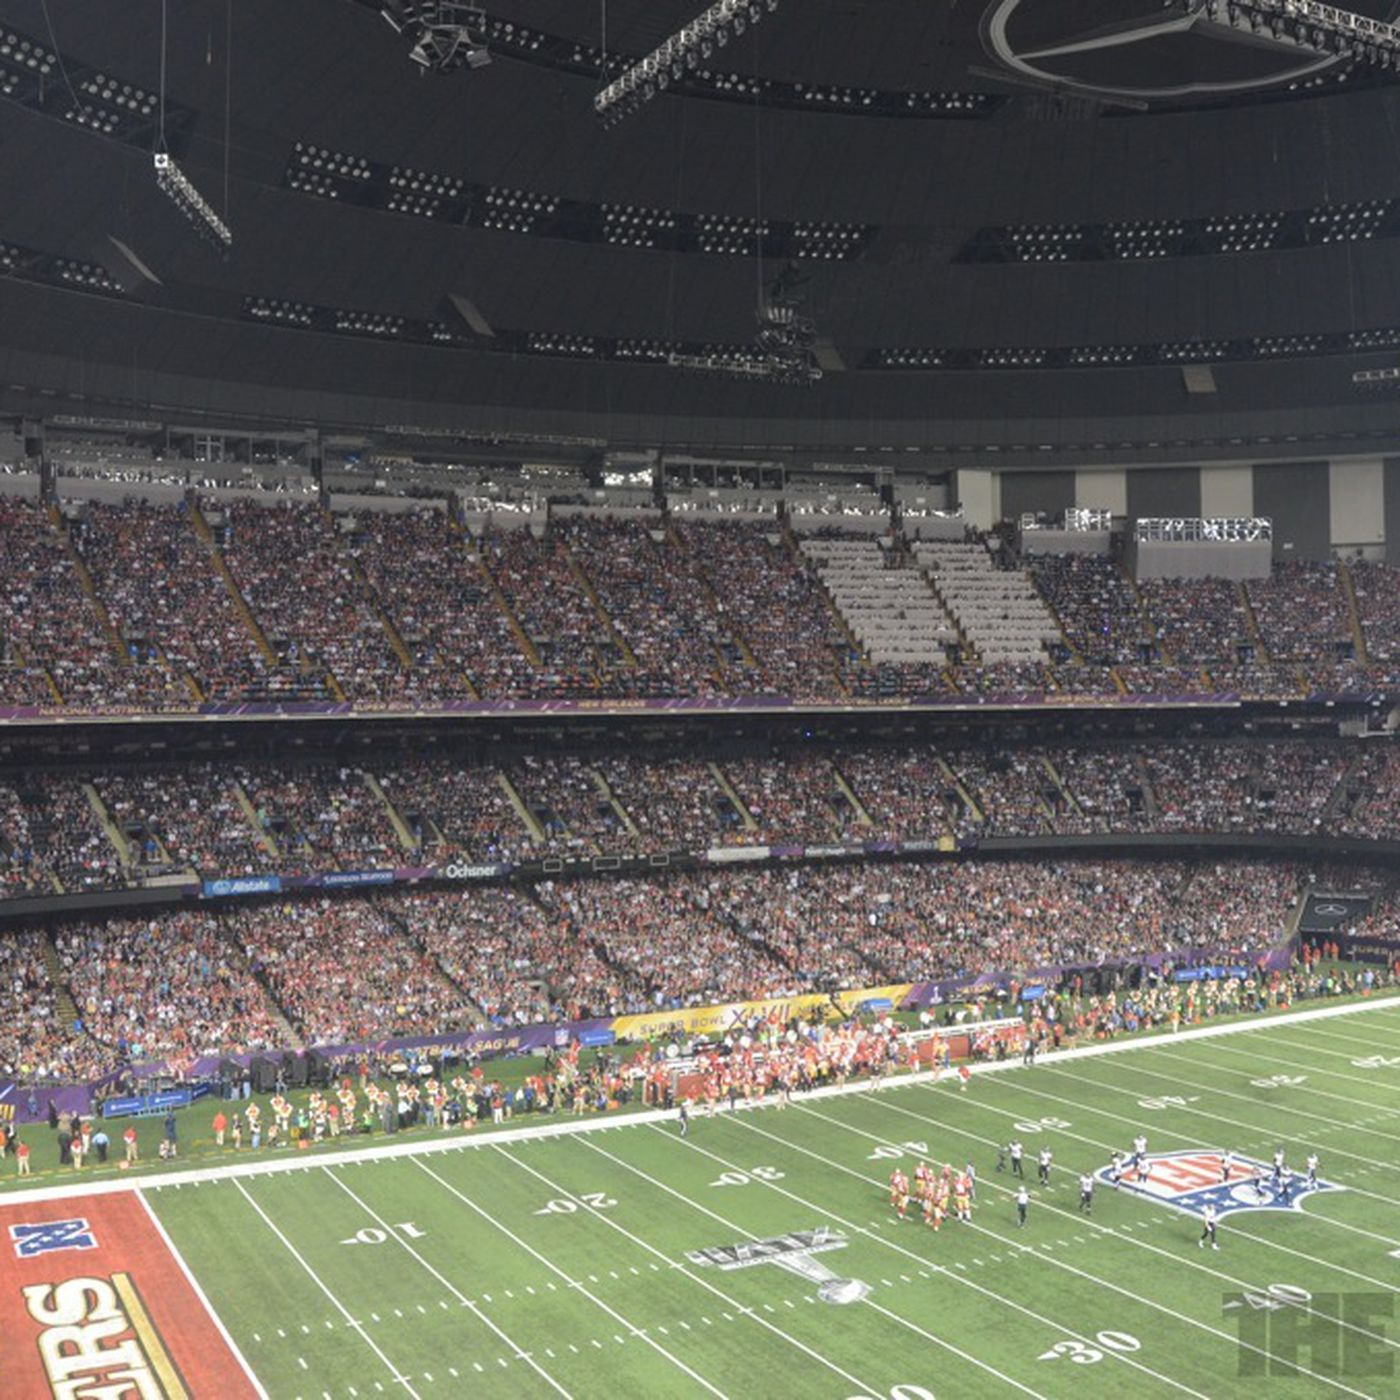 Super Bowl stalls for 35 minutes as Superdome experiences